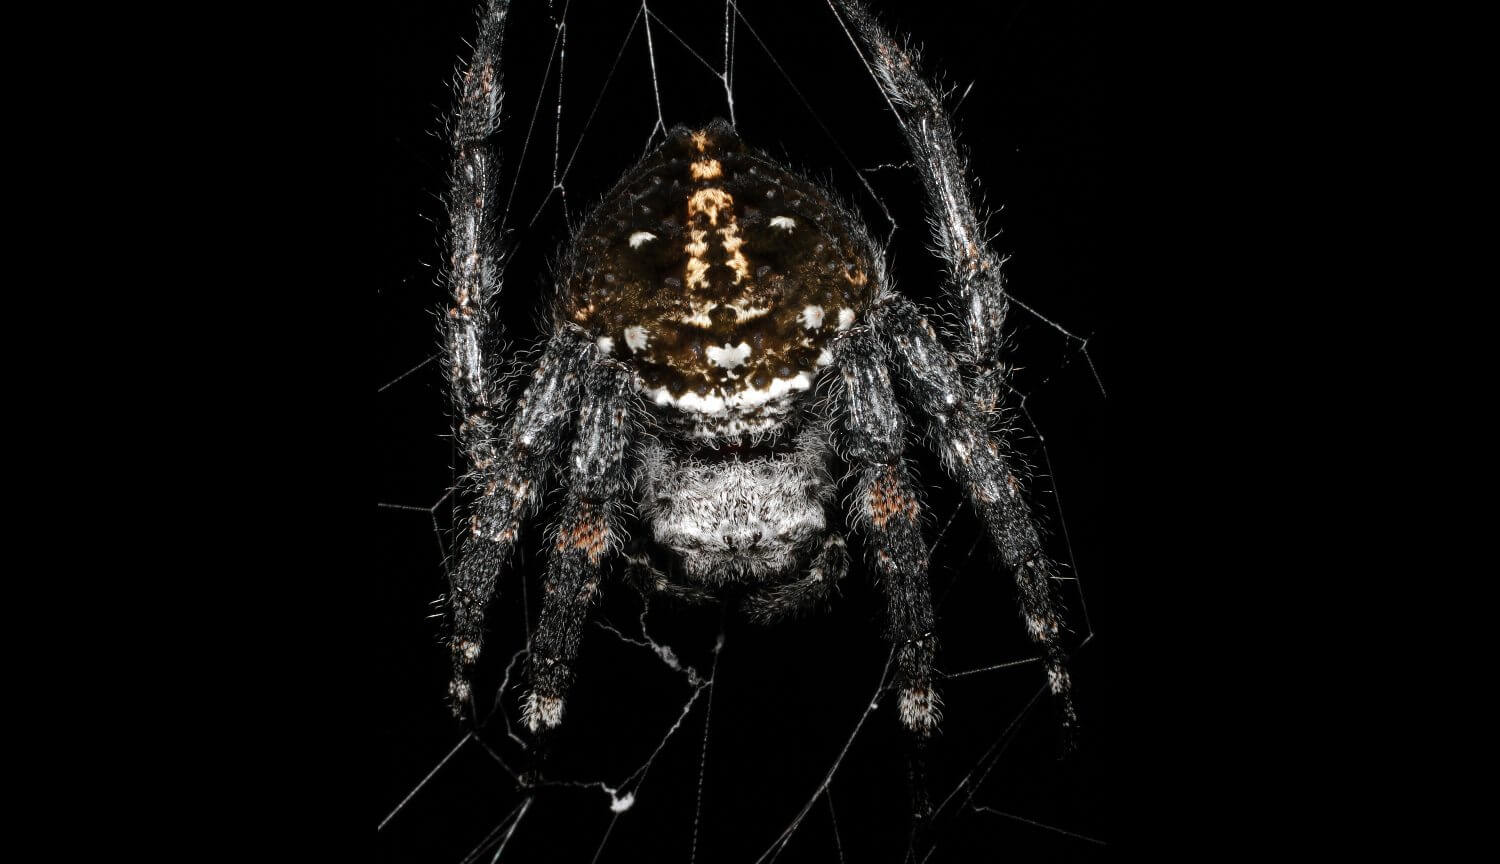 This spider weaves the strongest web. What's his secret?